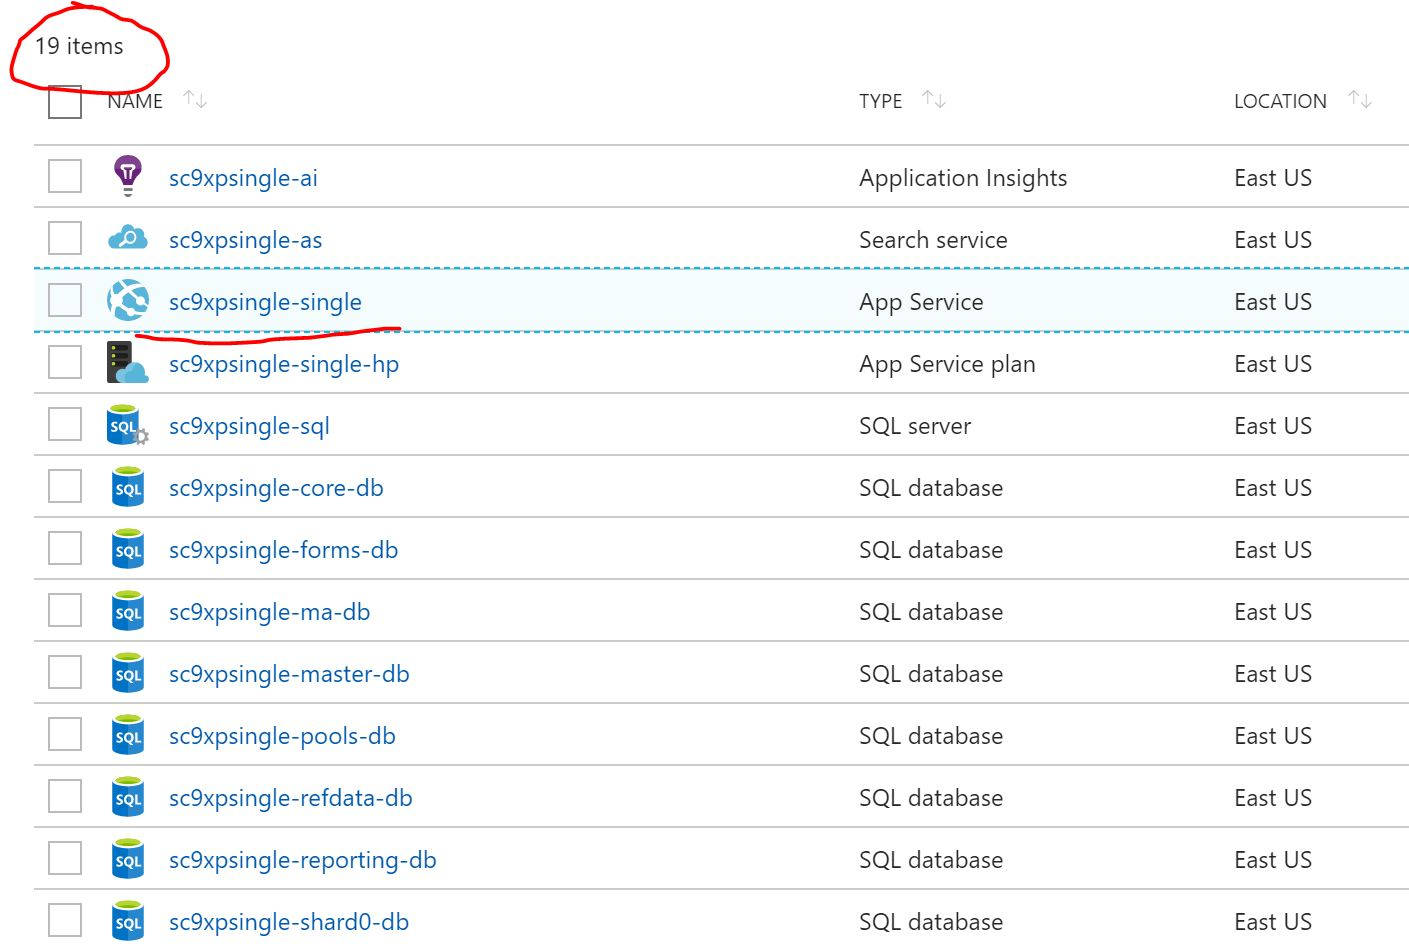 hight resolution of sitecore azure resources for xp single deployment topology